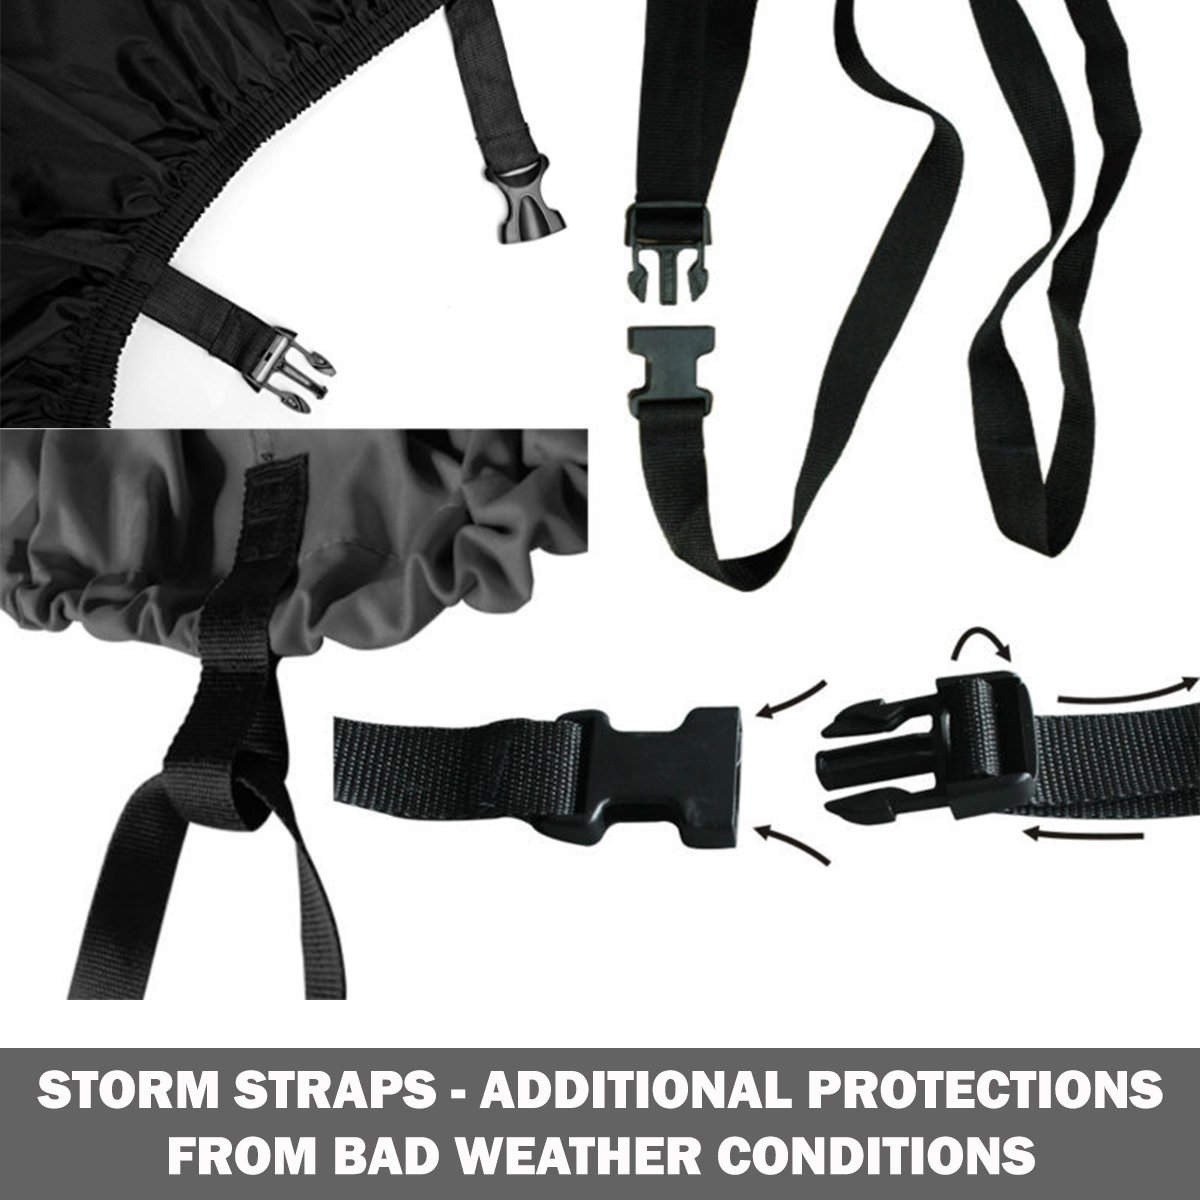 Widras Bicycle and Motorcycle Cover for Outdoor Storage Bike Heavy Duty Rip stop Material, Waterproof & Anti-UV Protection from All Weather Conditions for Mountain & Road Bikes by Widras (Image #6)